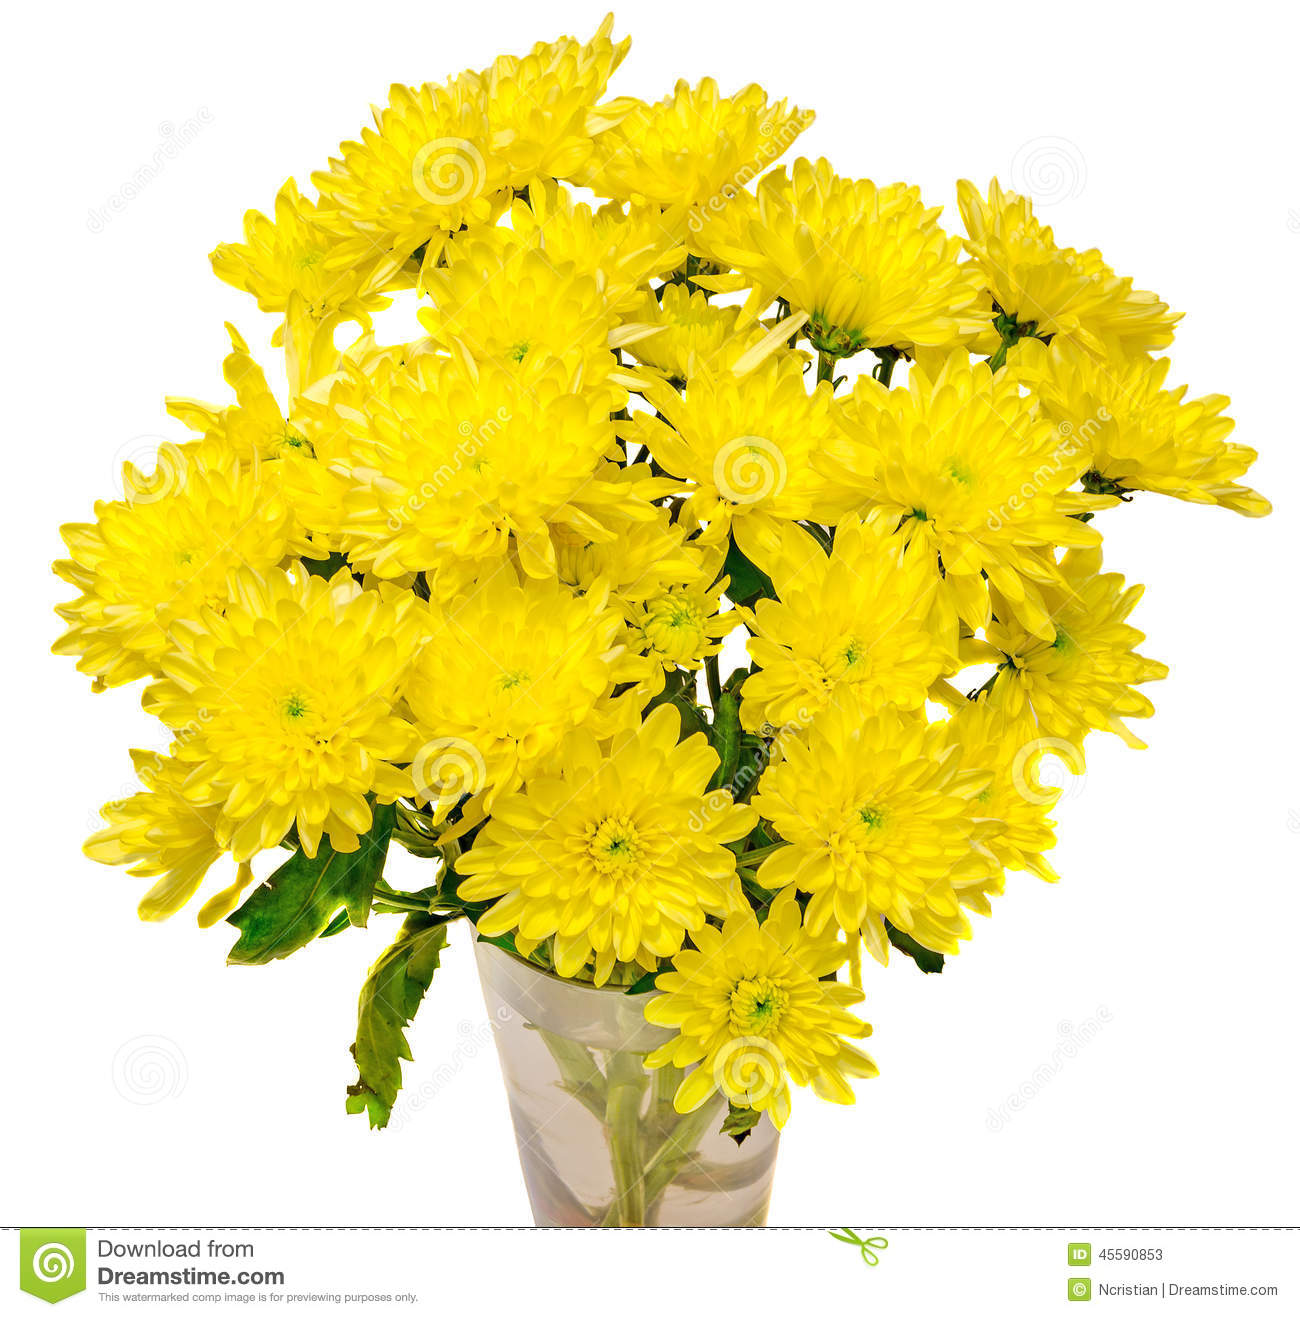 Yellow chrysanthemum flowers in a transparent vase close up white download yellow chrysanthemum flowers in a transparent vase close up white background stock image mightylinksfo